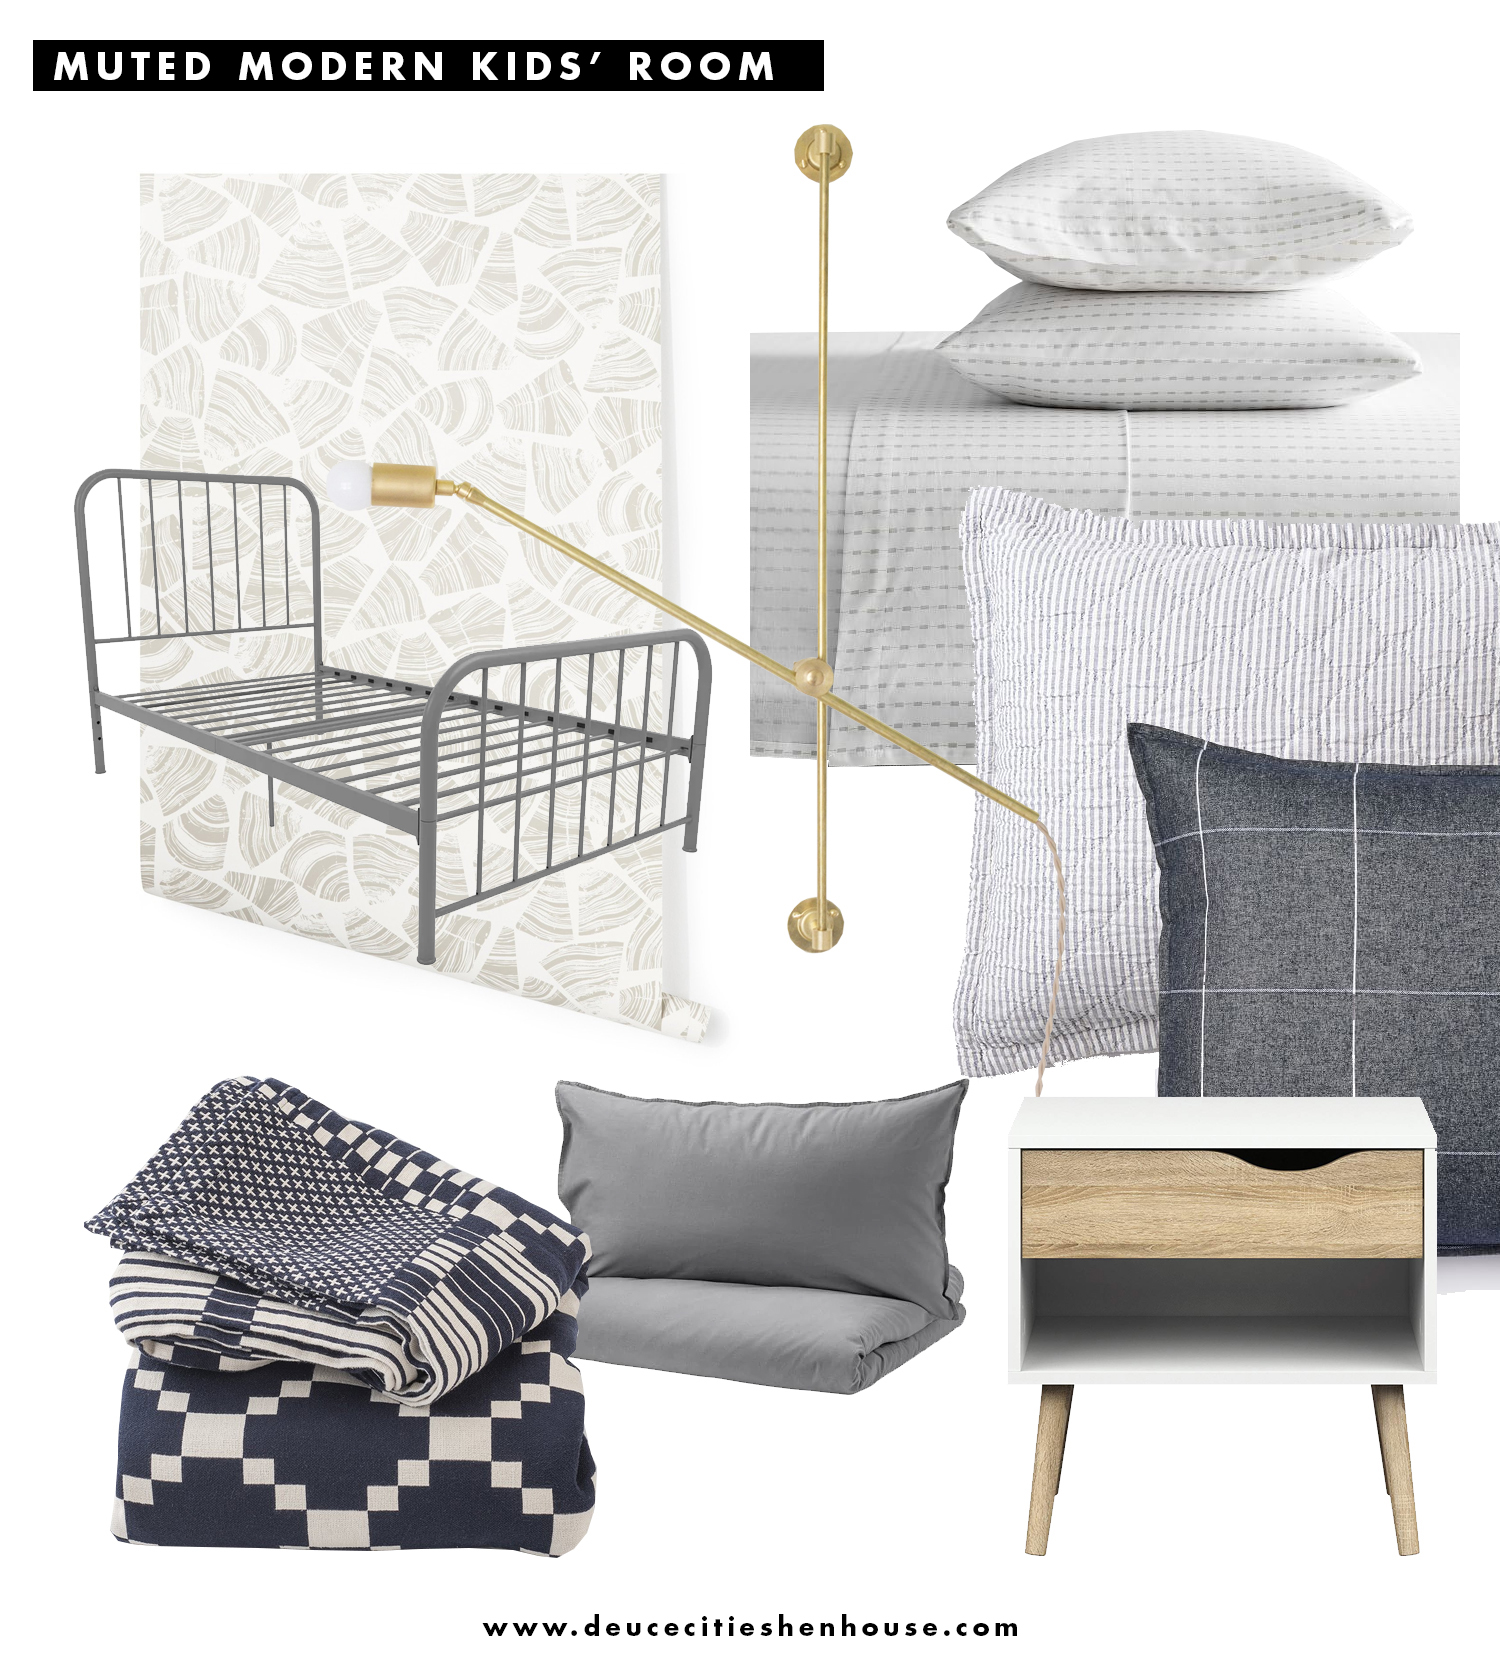 A Plan for The Kids' Shared Bedroom : Modern & Muted - Deuce Cities Henhouse